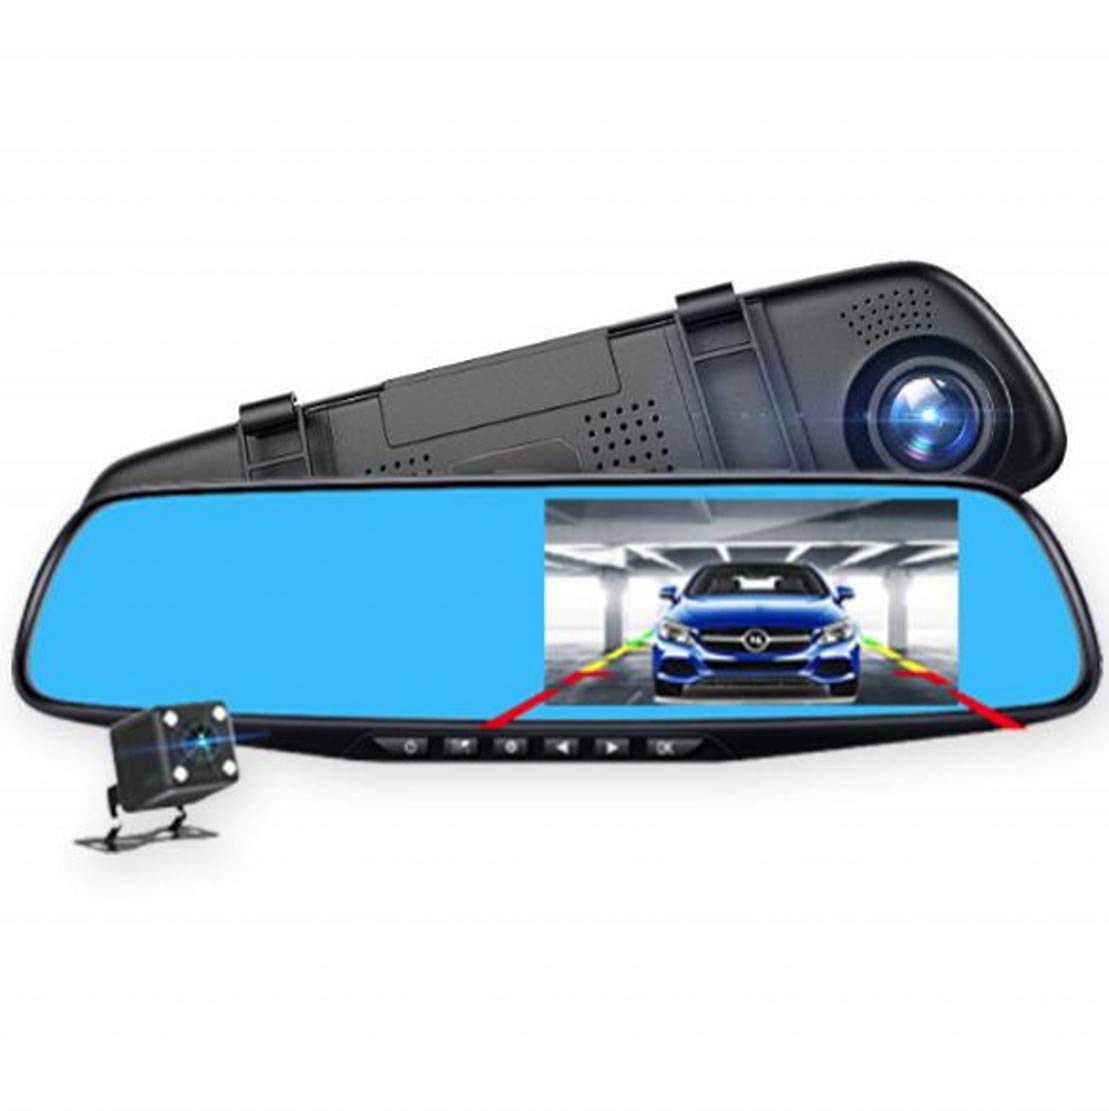 SUPKEY Backup Camera 4.3'' Mirror Dash Cam Touch Screen 1080P Rearview Front and Rear Dual Lens with Waterproof Reversing Camera